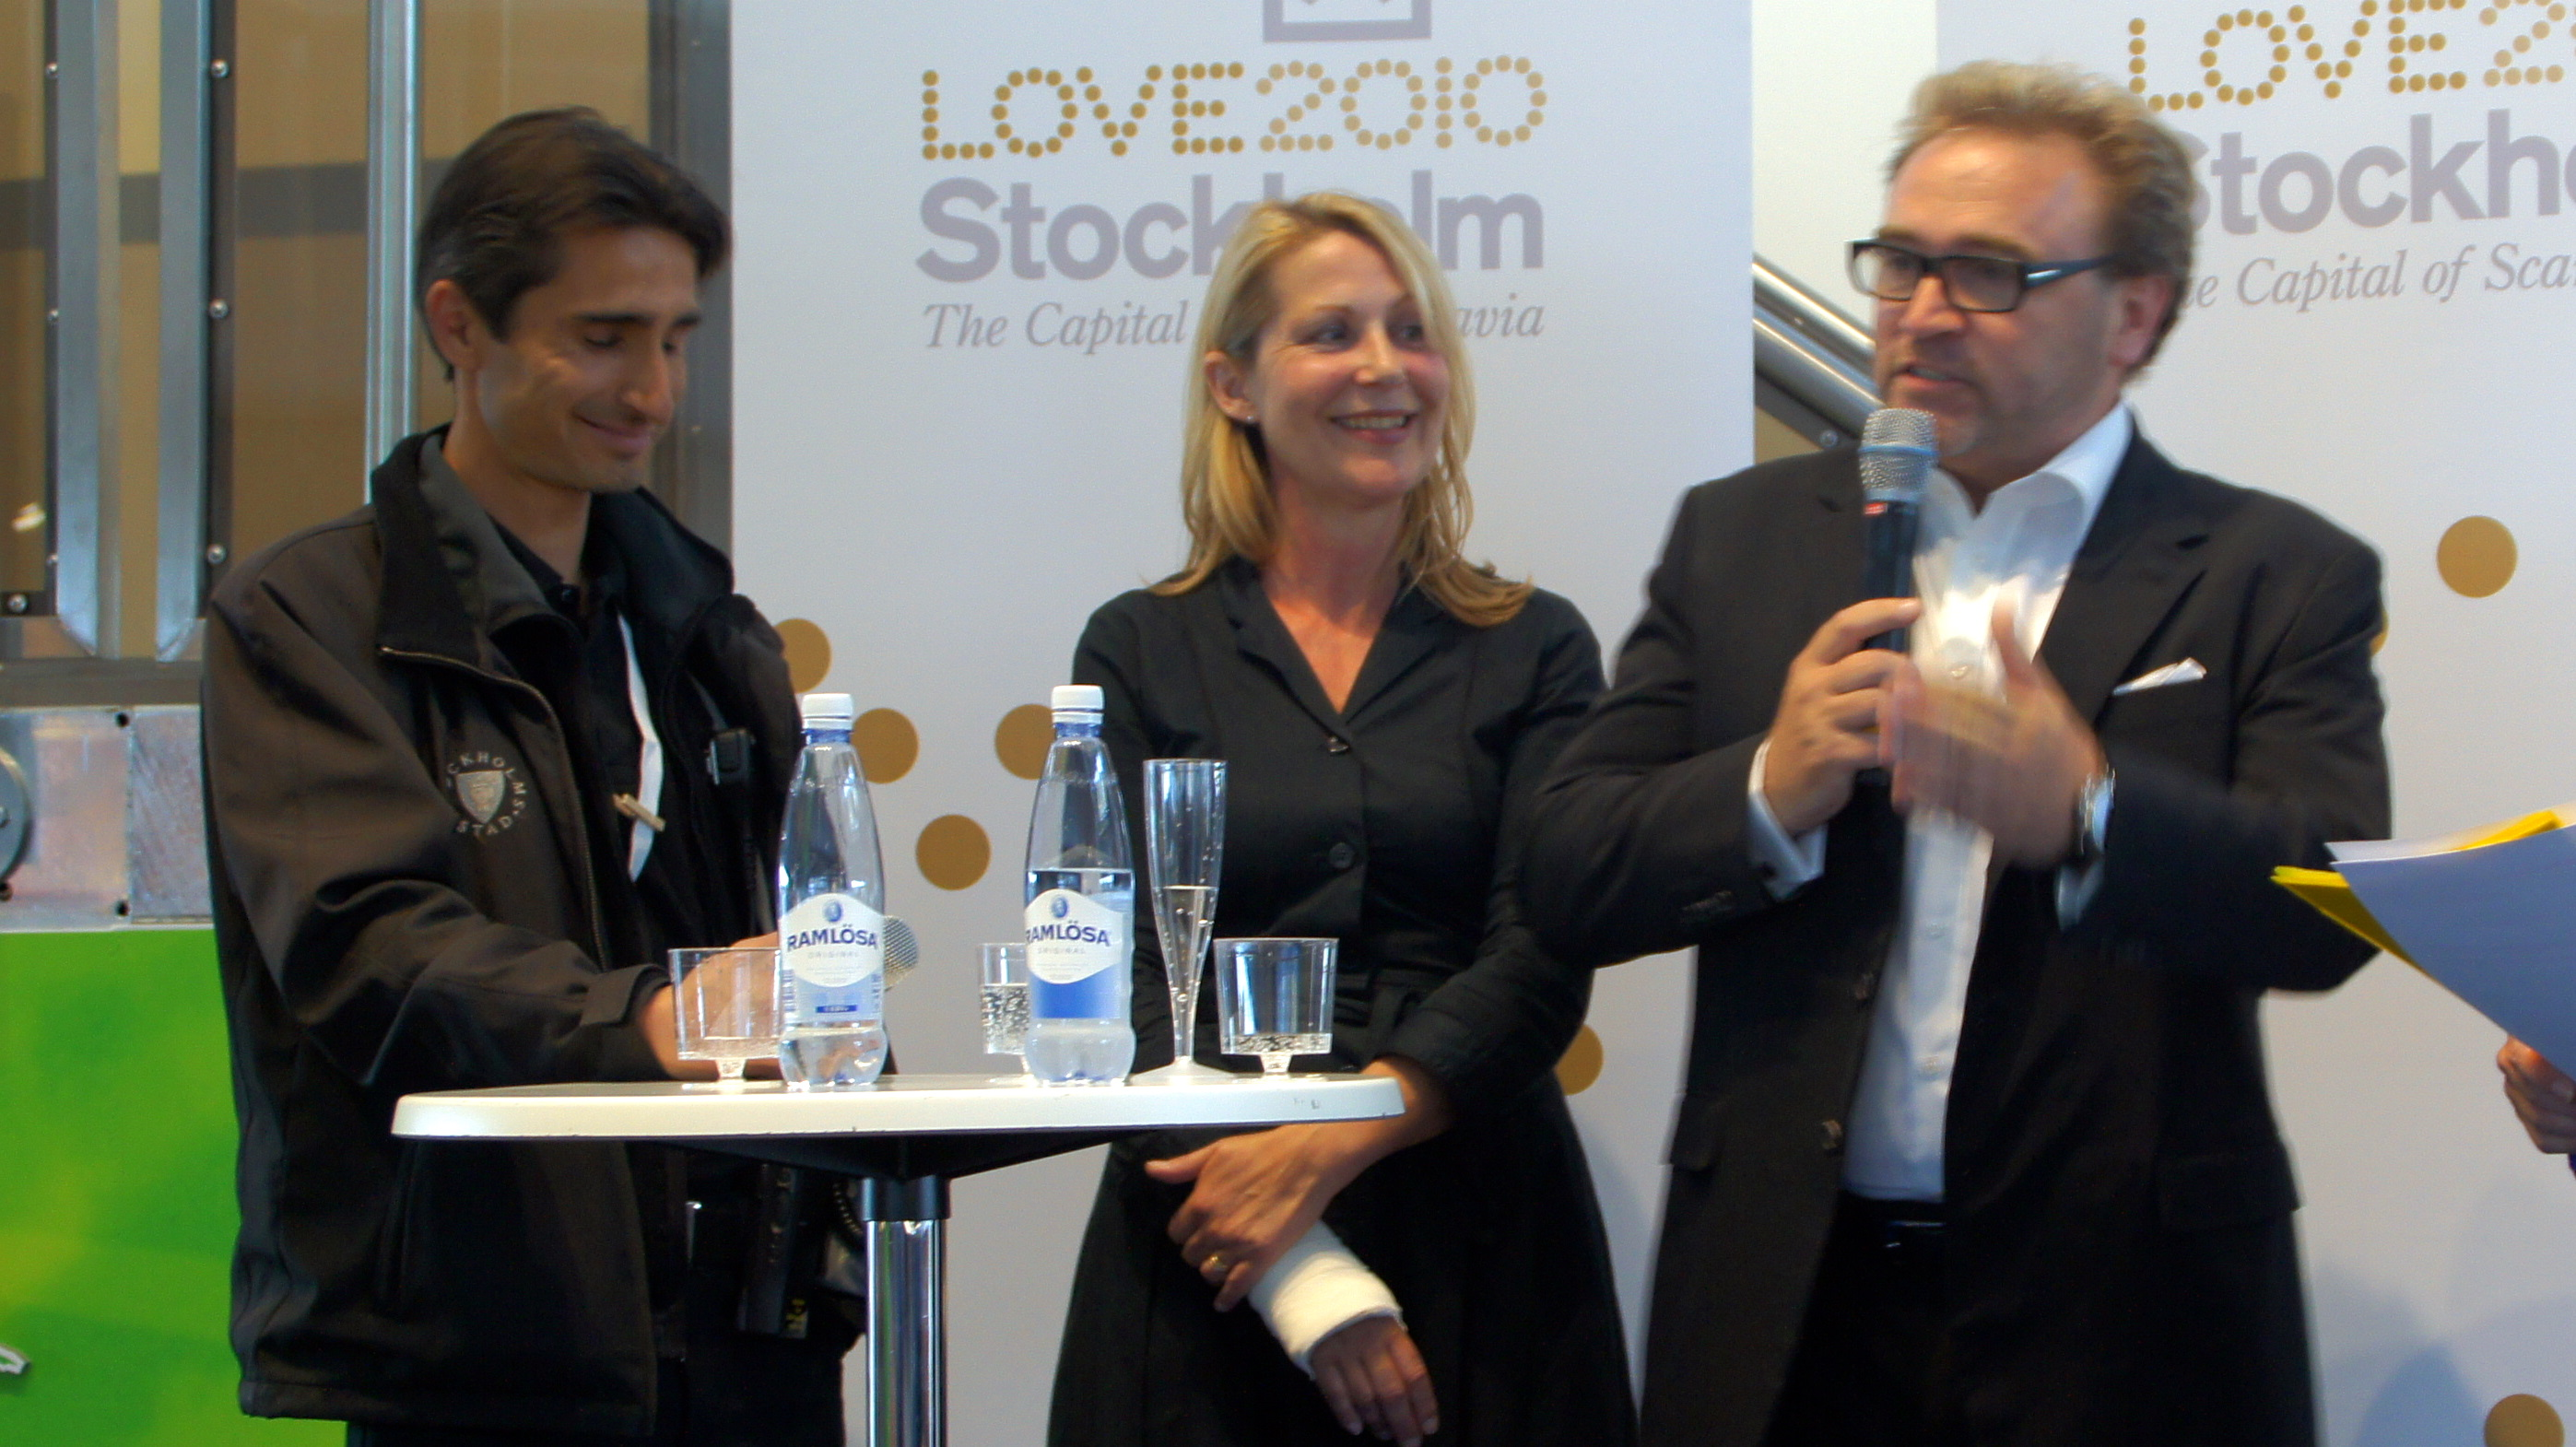 Julian Stubbs at Stockholm Love 2010